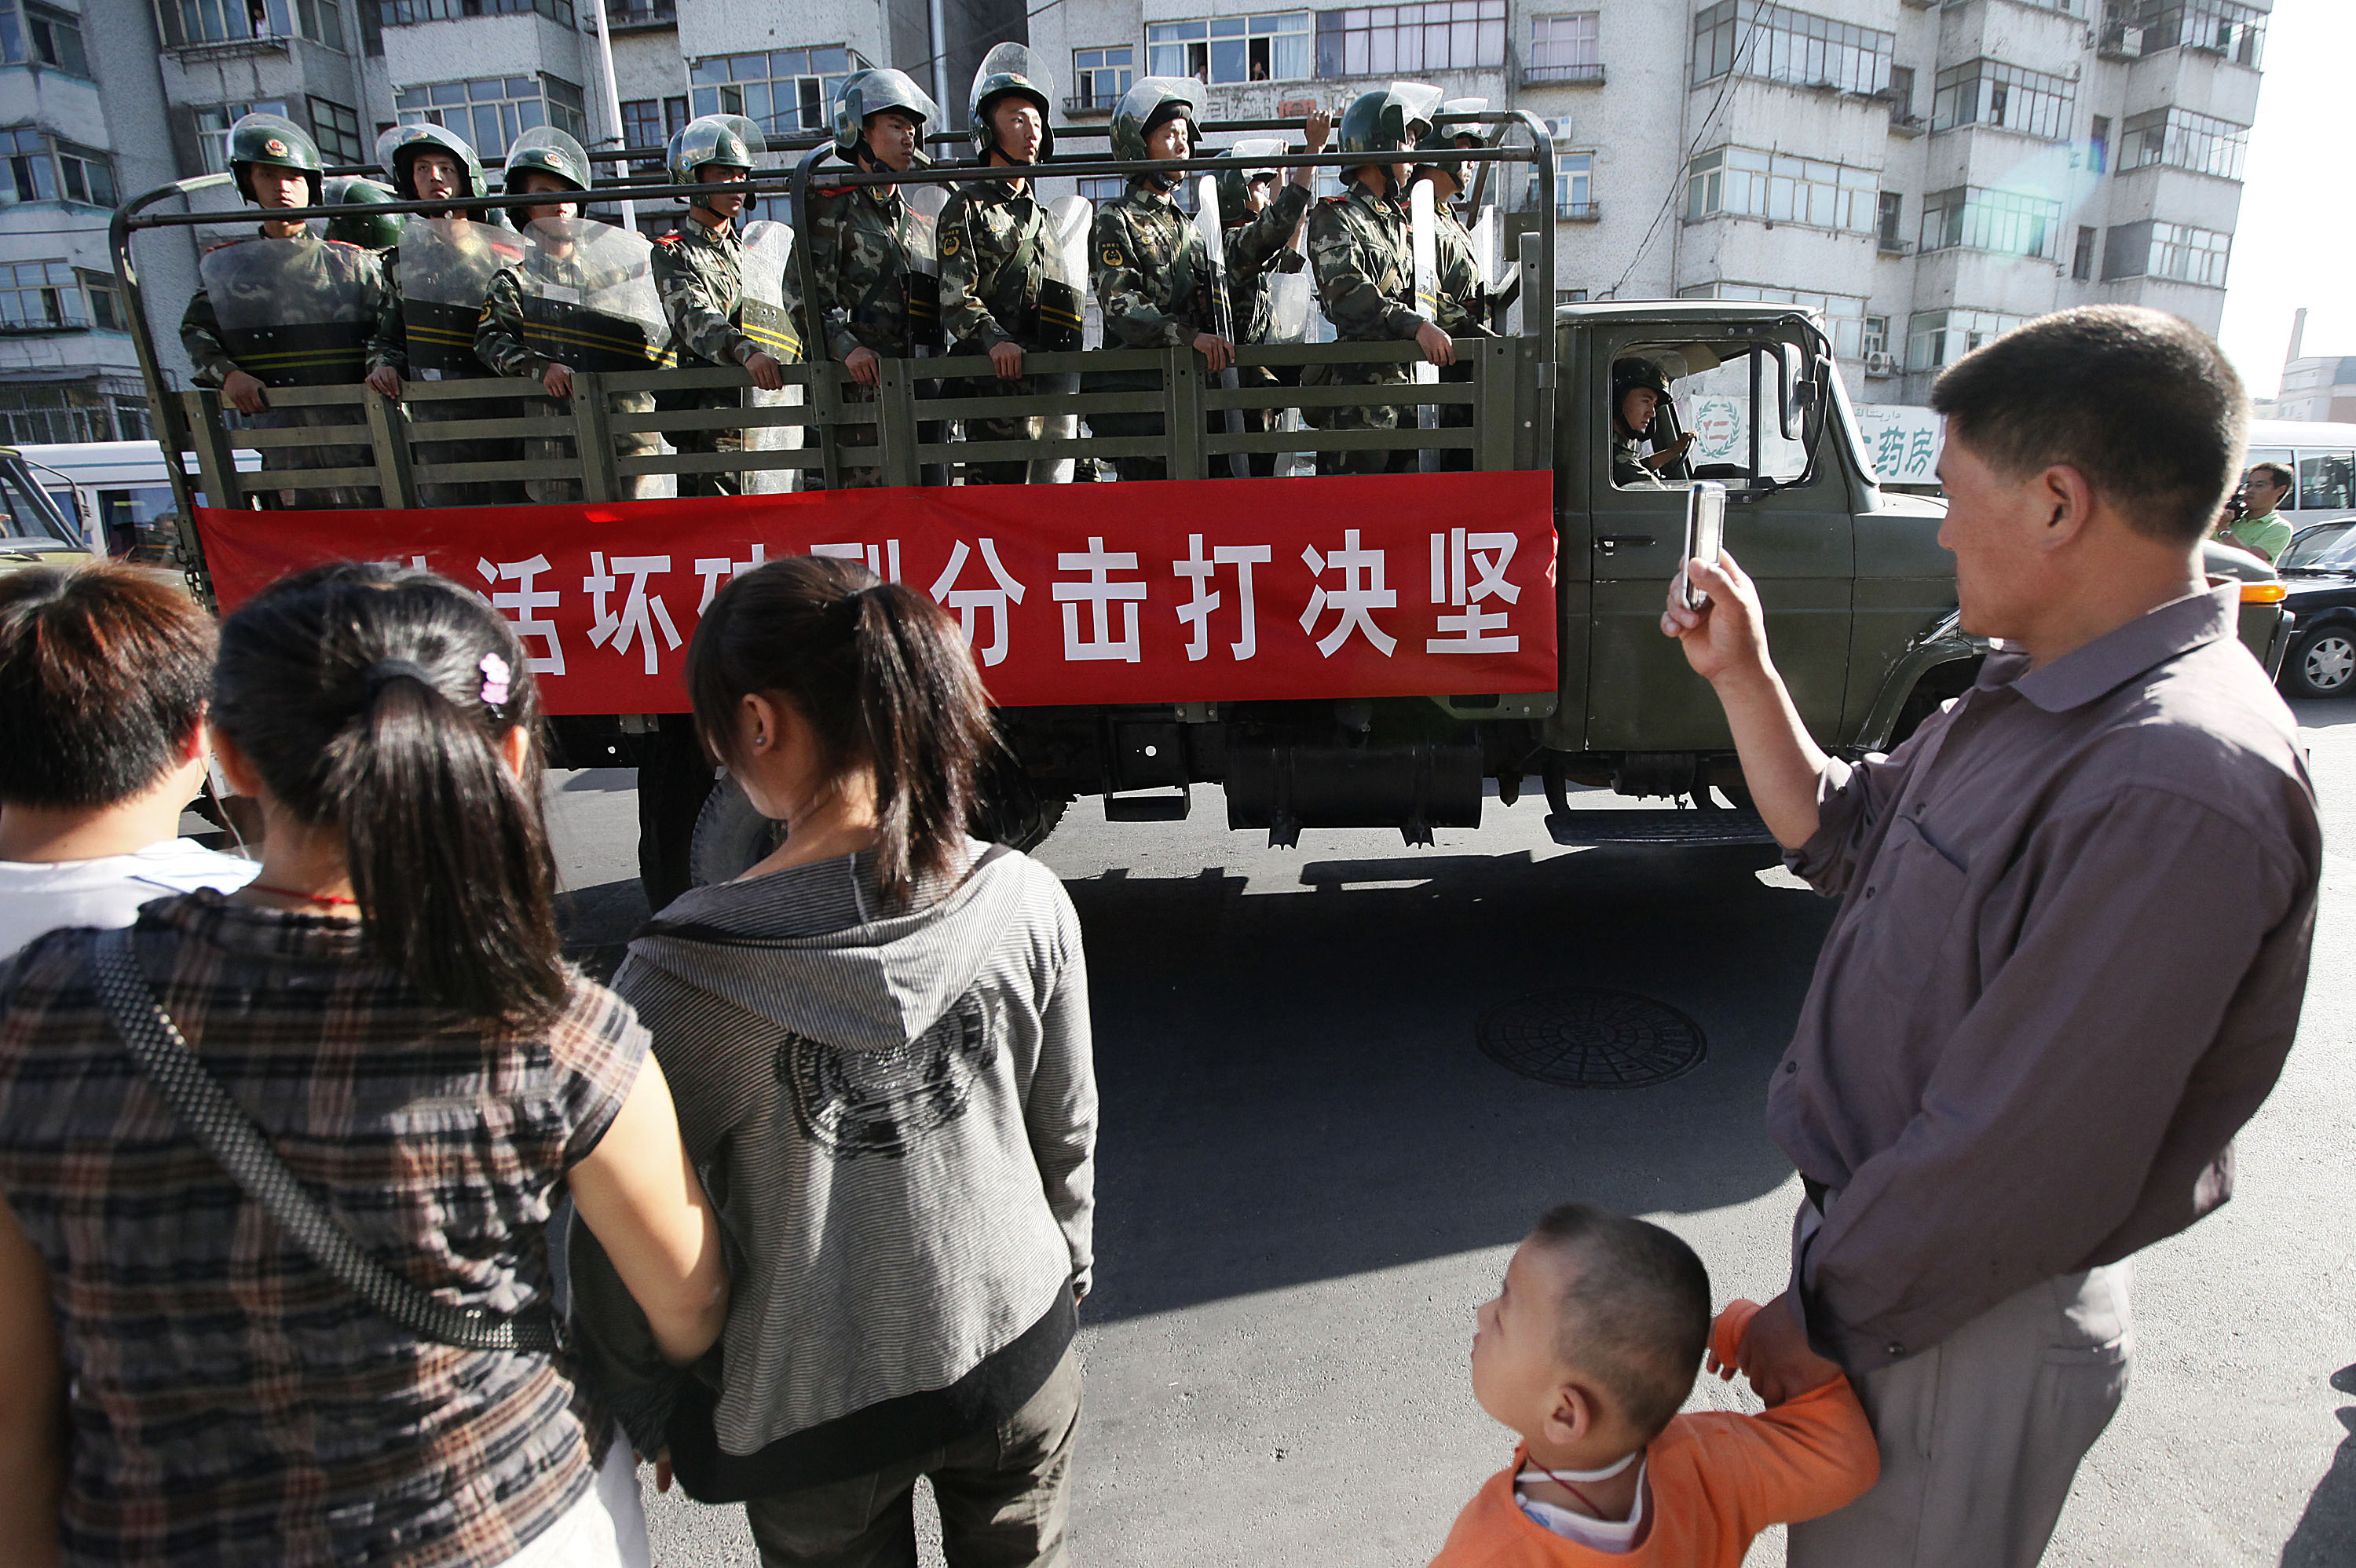 China locks down Xinjiang a decade after deadly ethnic riots